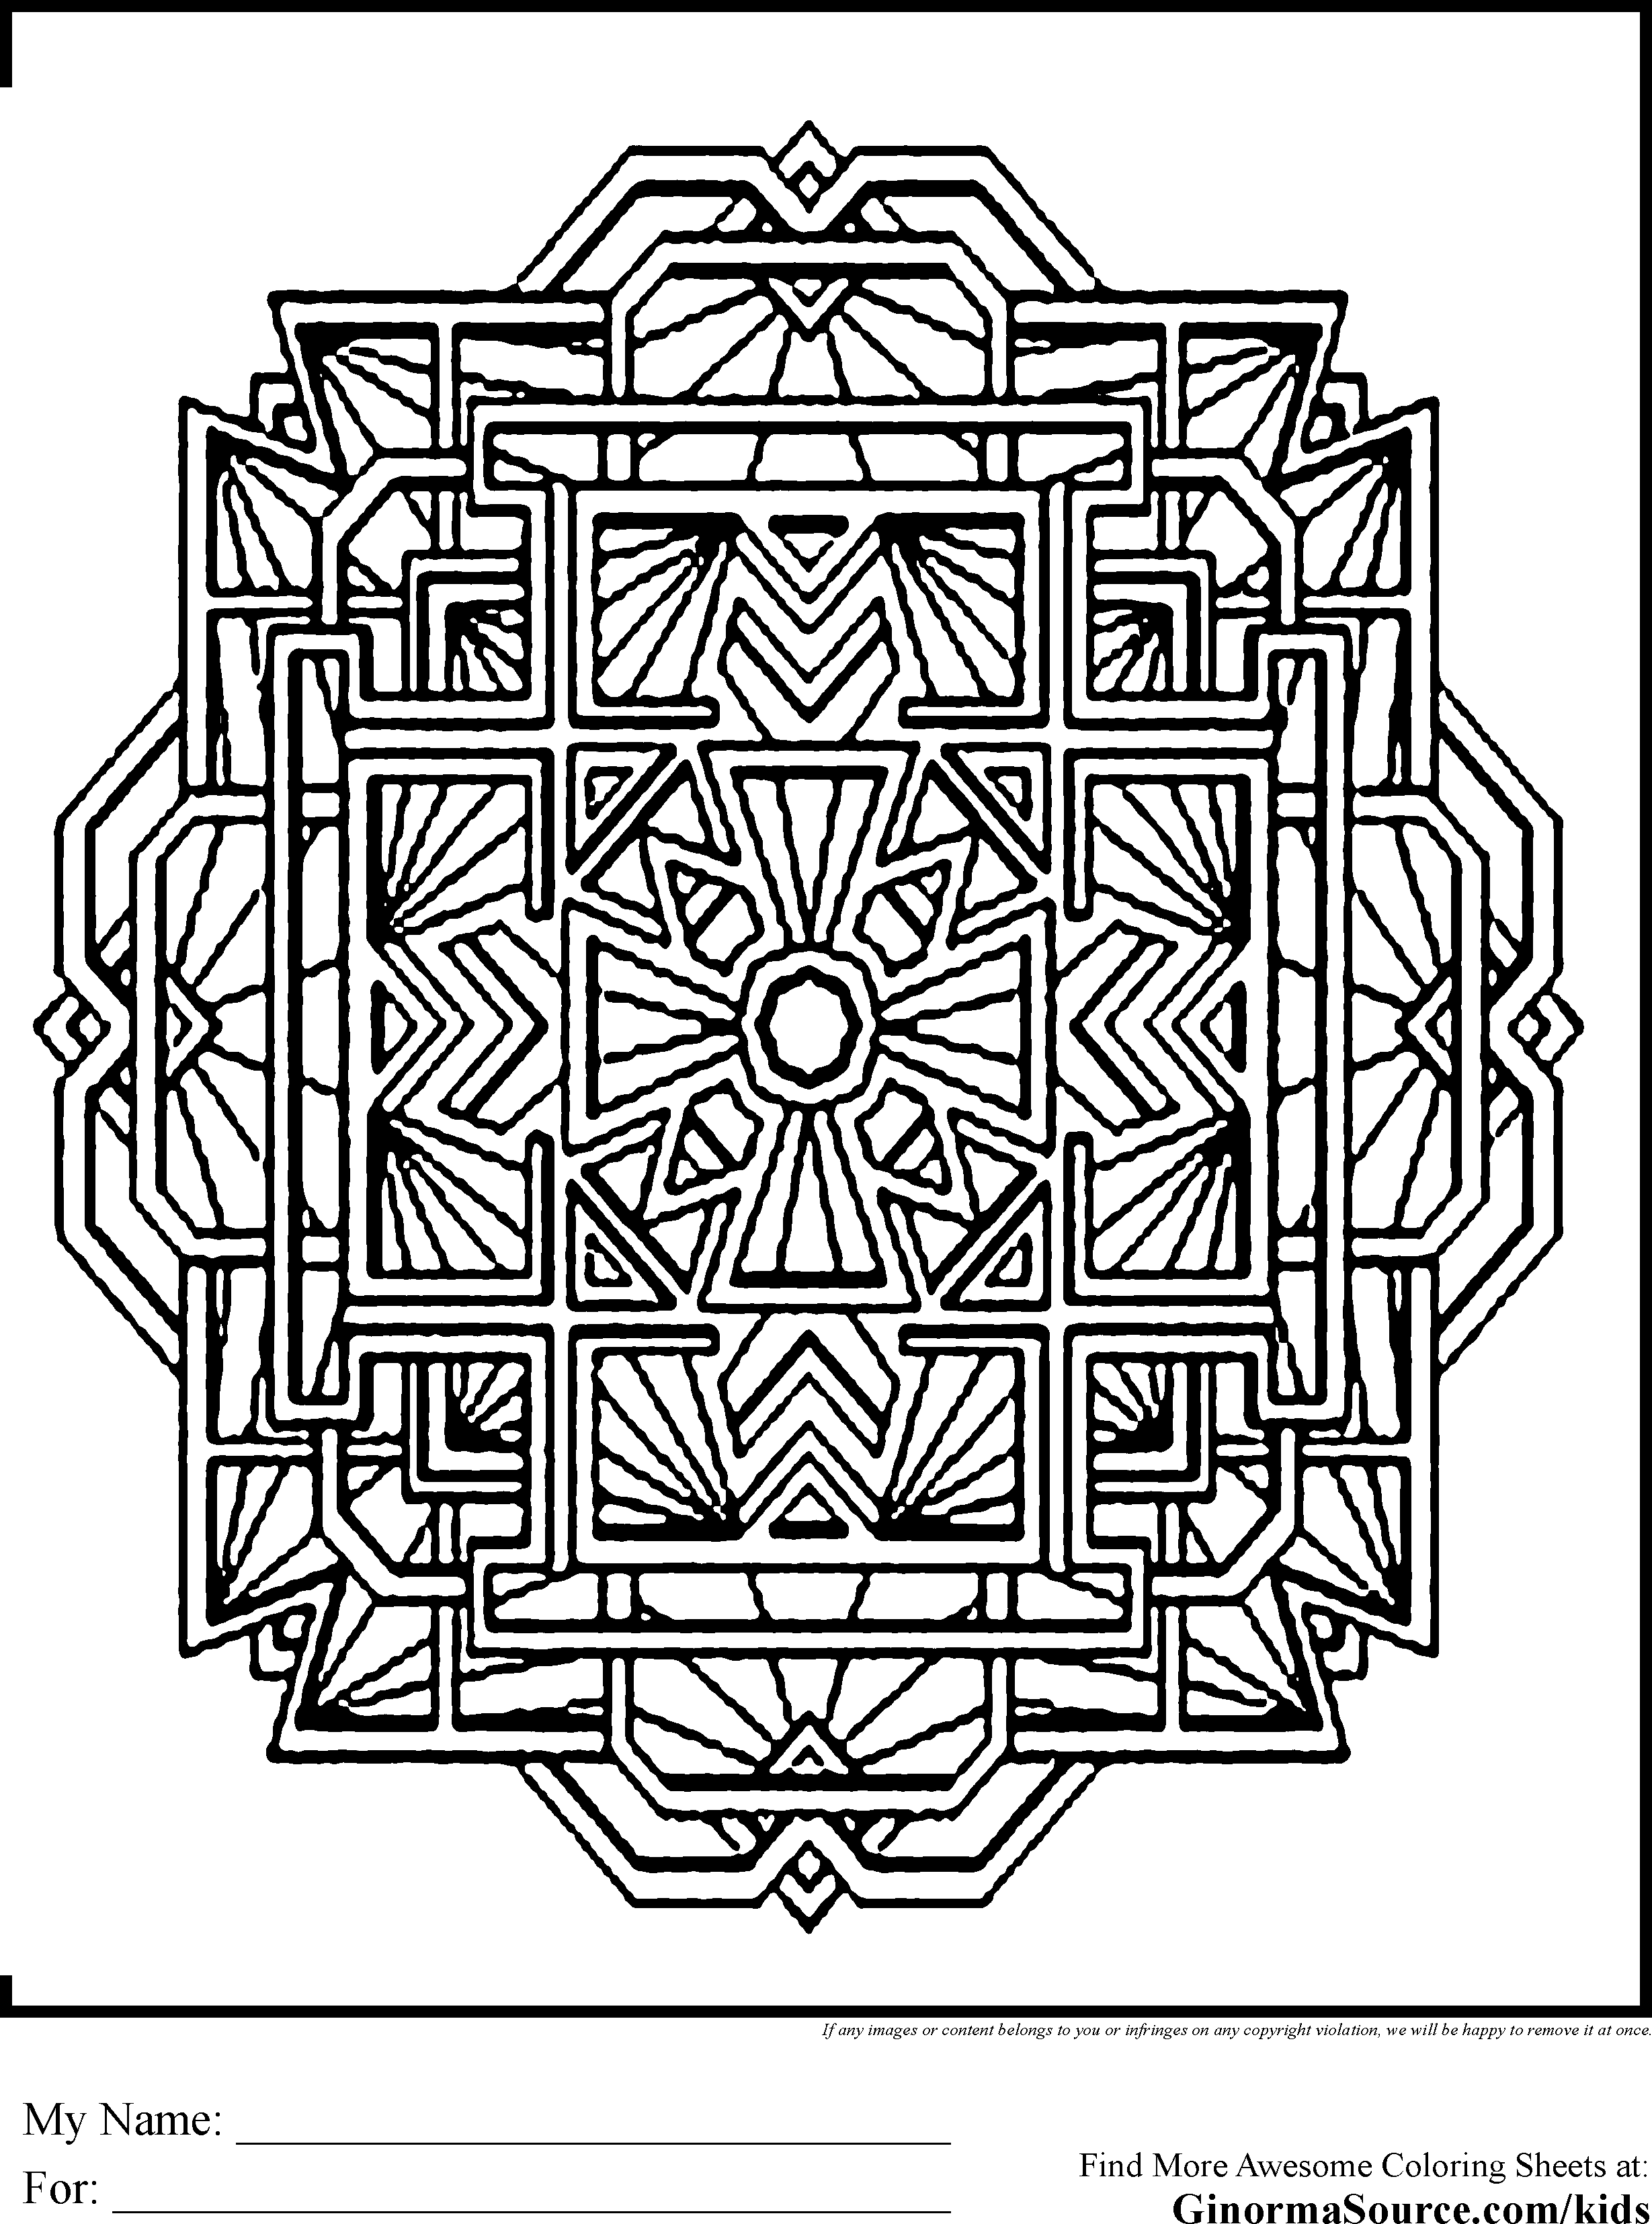 m and m coloring pages advanced coloring pages mandale tibet ginormasource kids - Advanced Coloring Pages 2